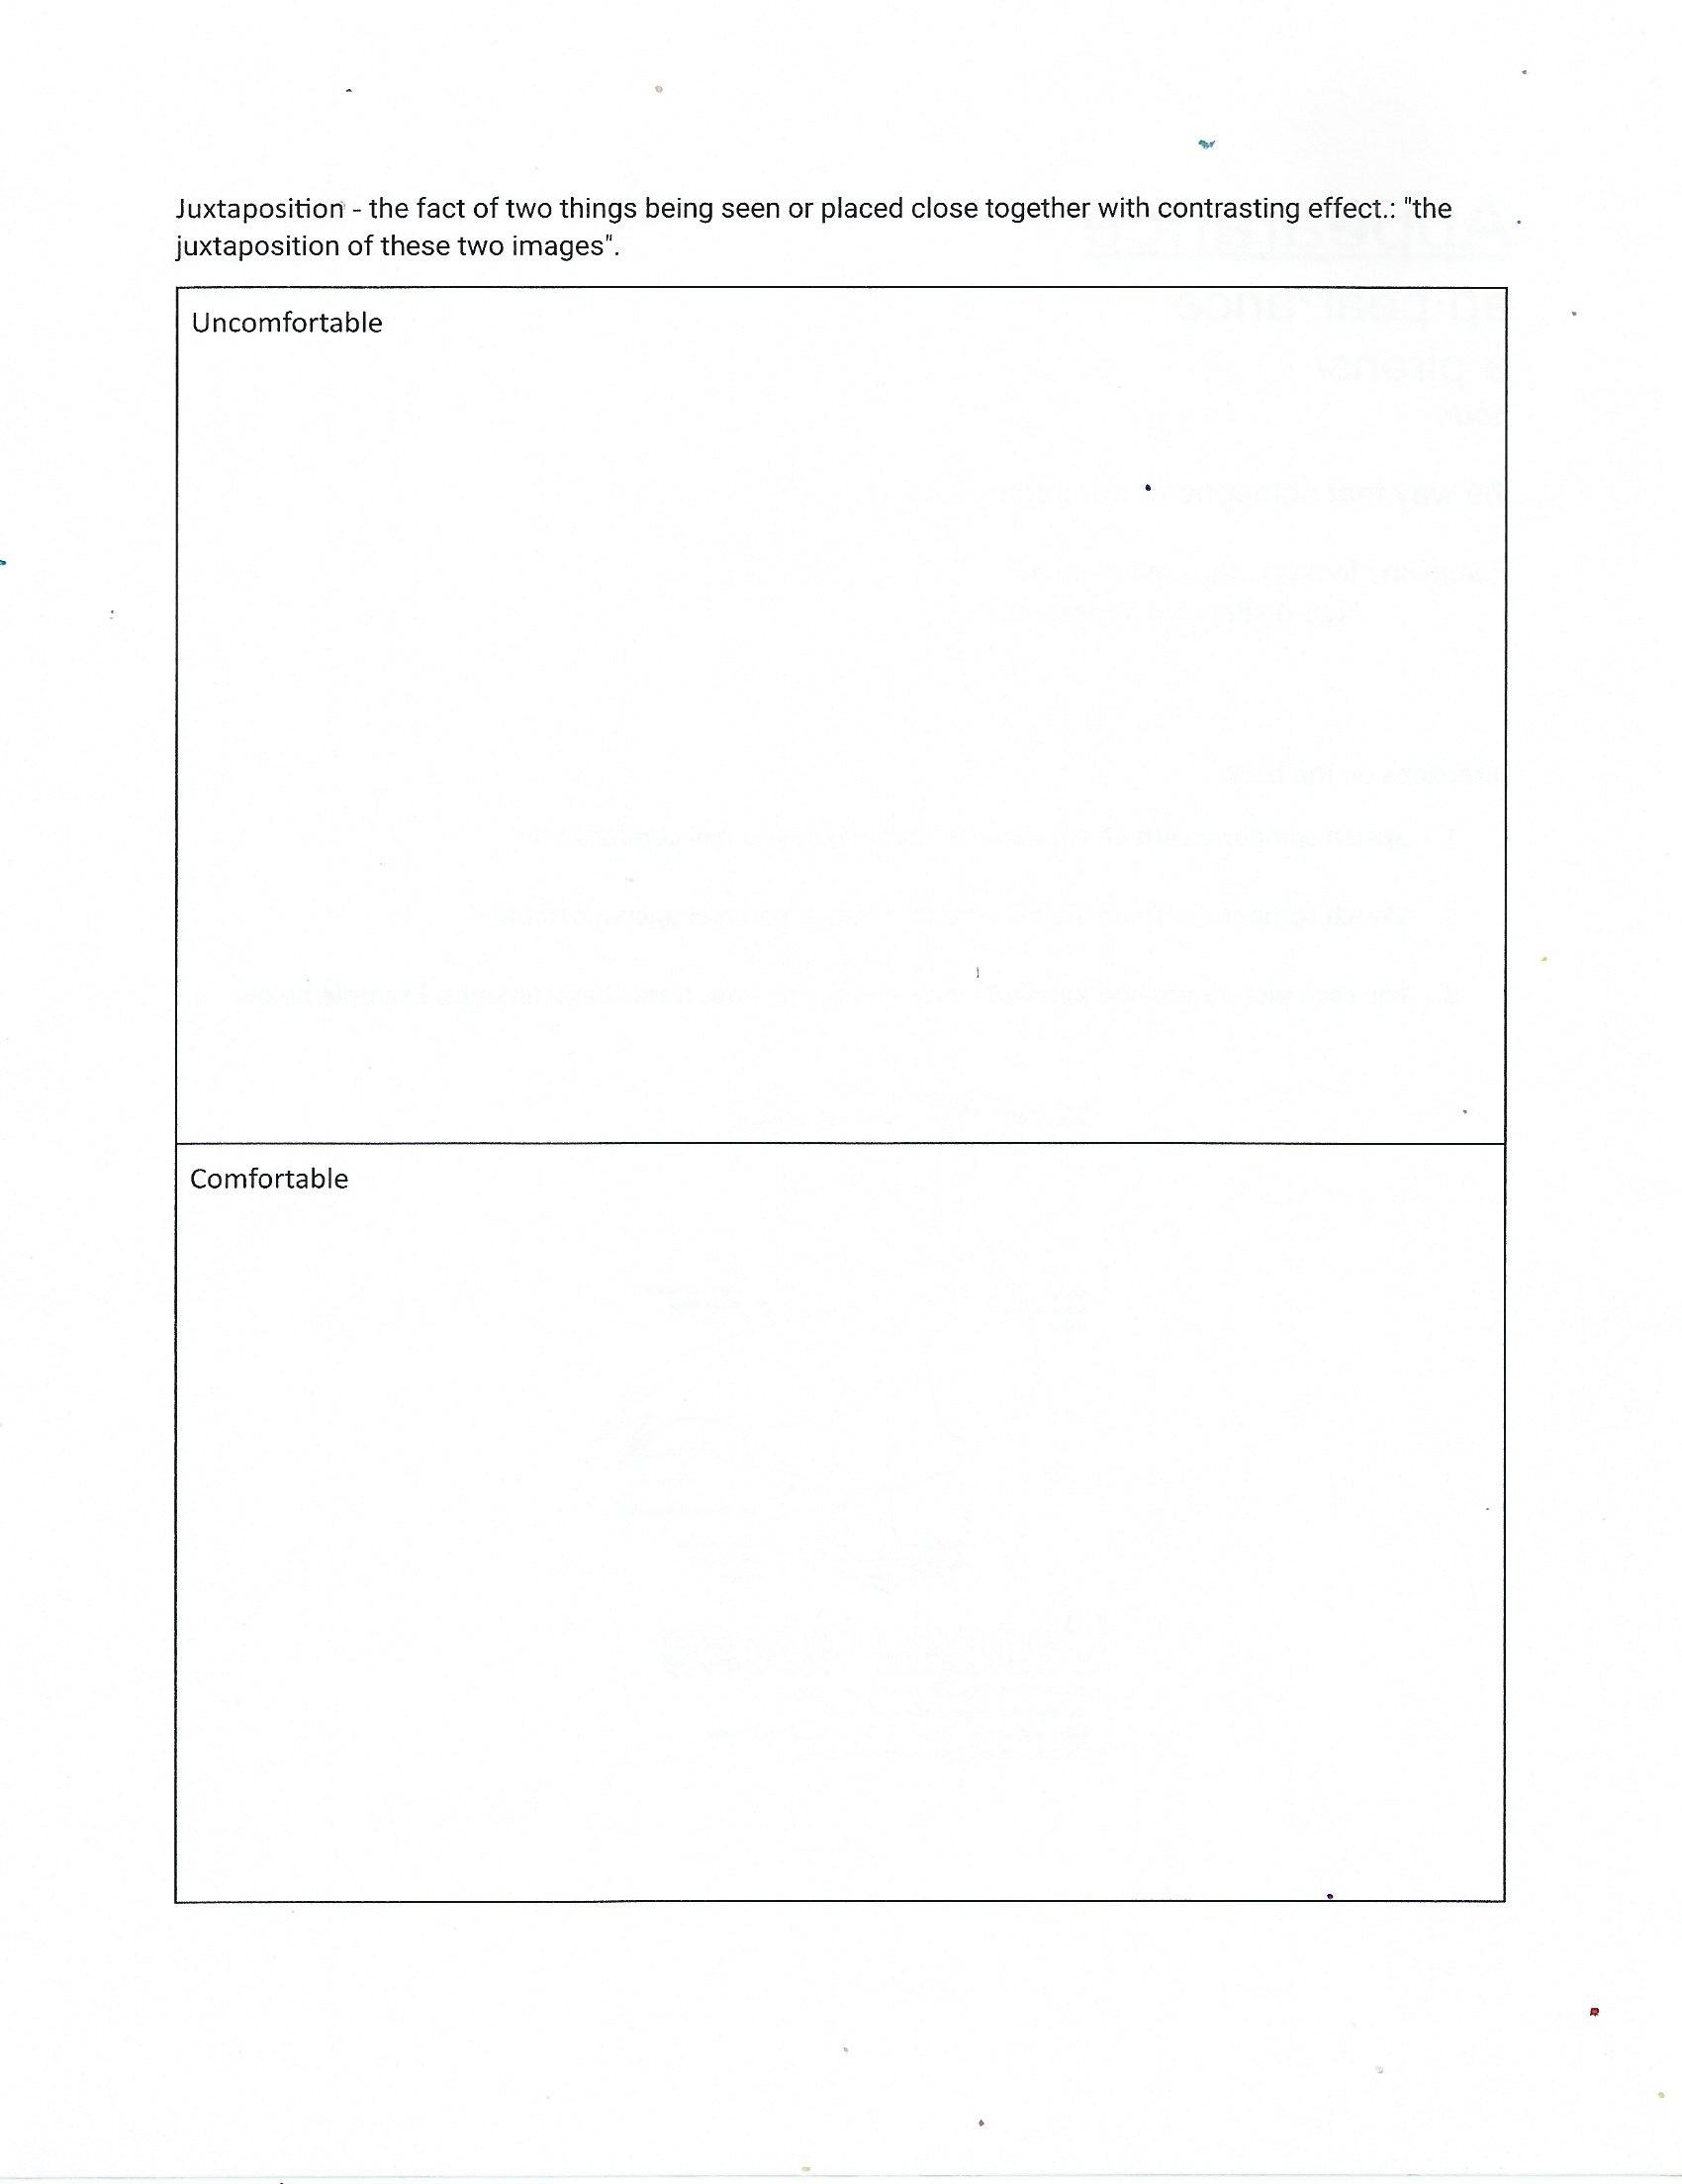 A Worksheet Where You Have To Draw Things That Make You